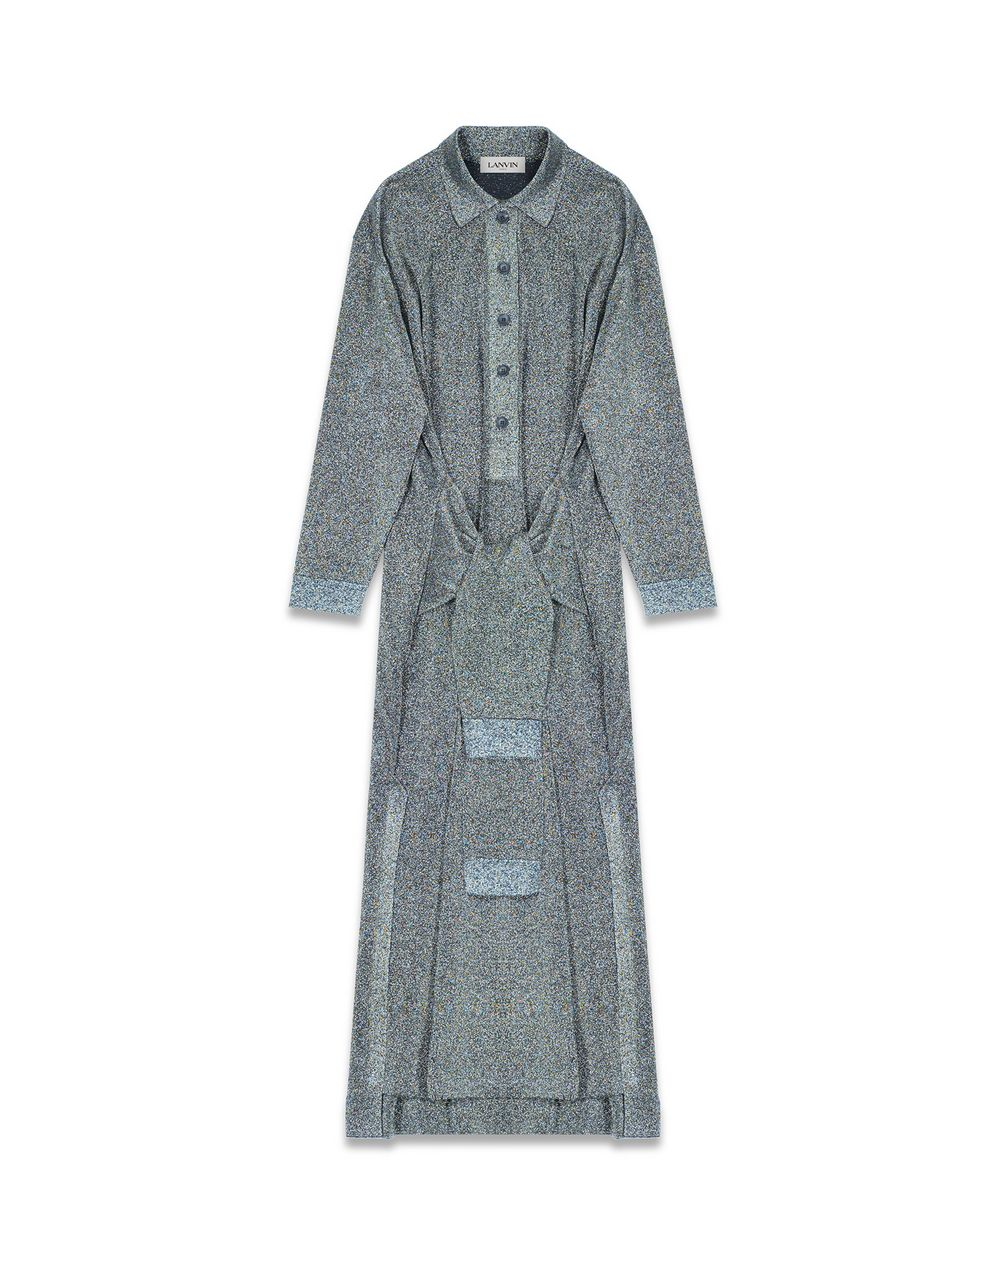 LONG LUREX DRESS - Lanvin